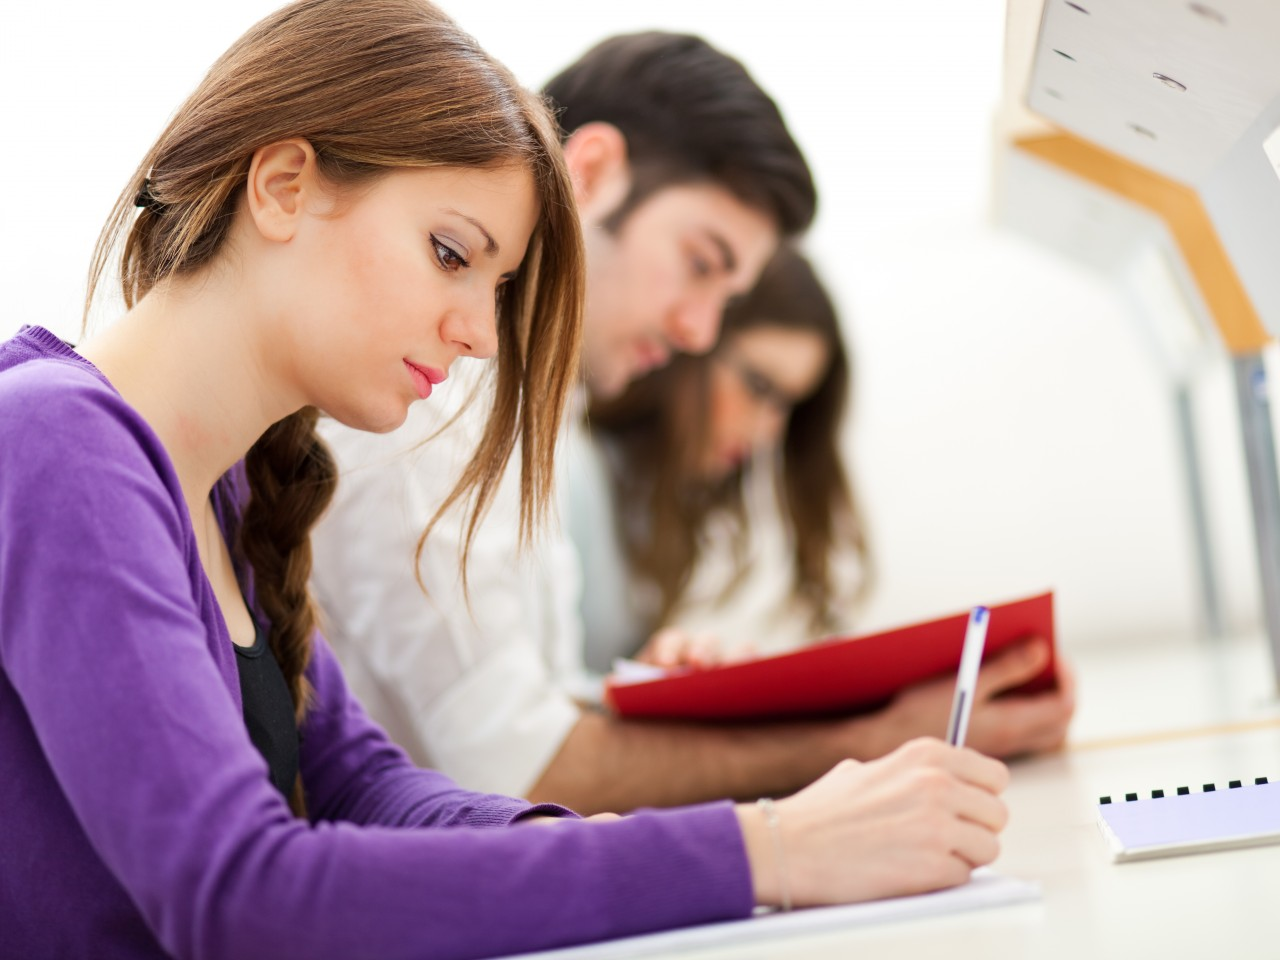 problem college students face The top three challenges students face many college students face the realization that their previous academic preparation was not at the level it needed to be.